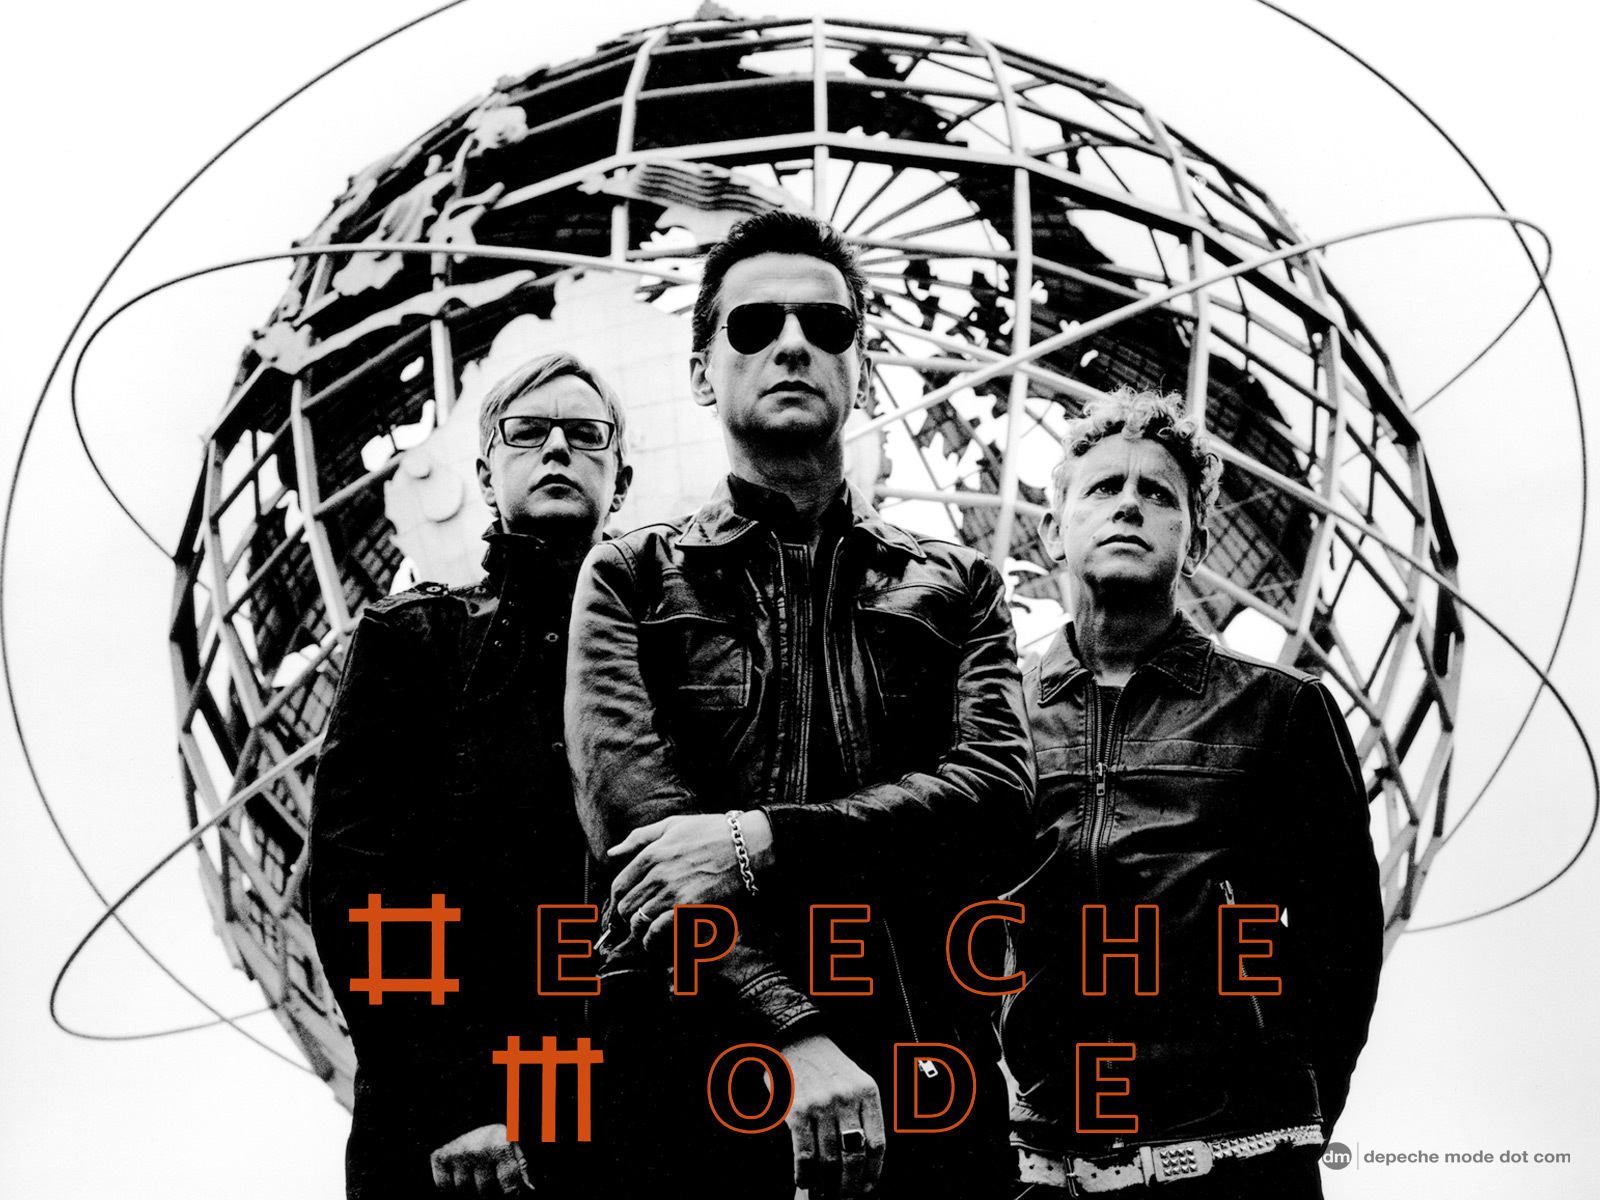 The United States of the Solar System, A.D. 2133 (Deep State Nine) DM-wallpapers-depeche-mode-5297316-1600-1200